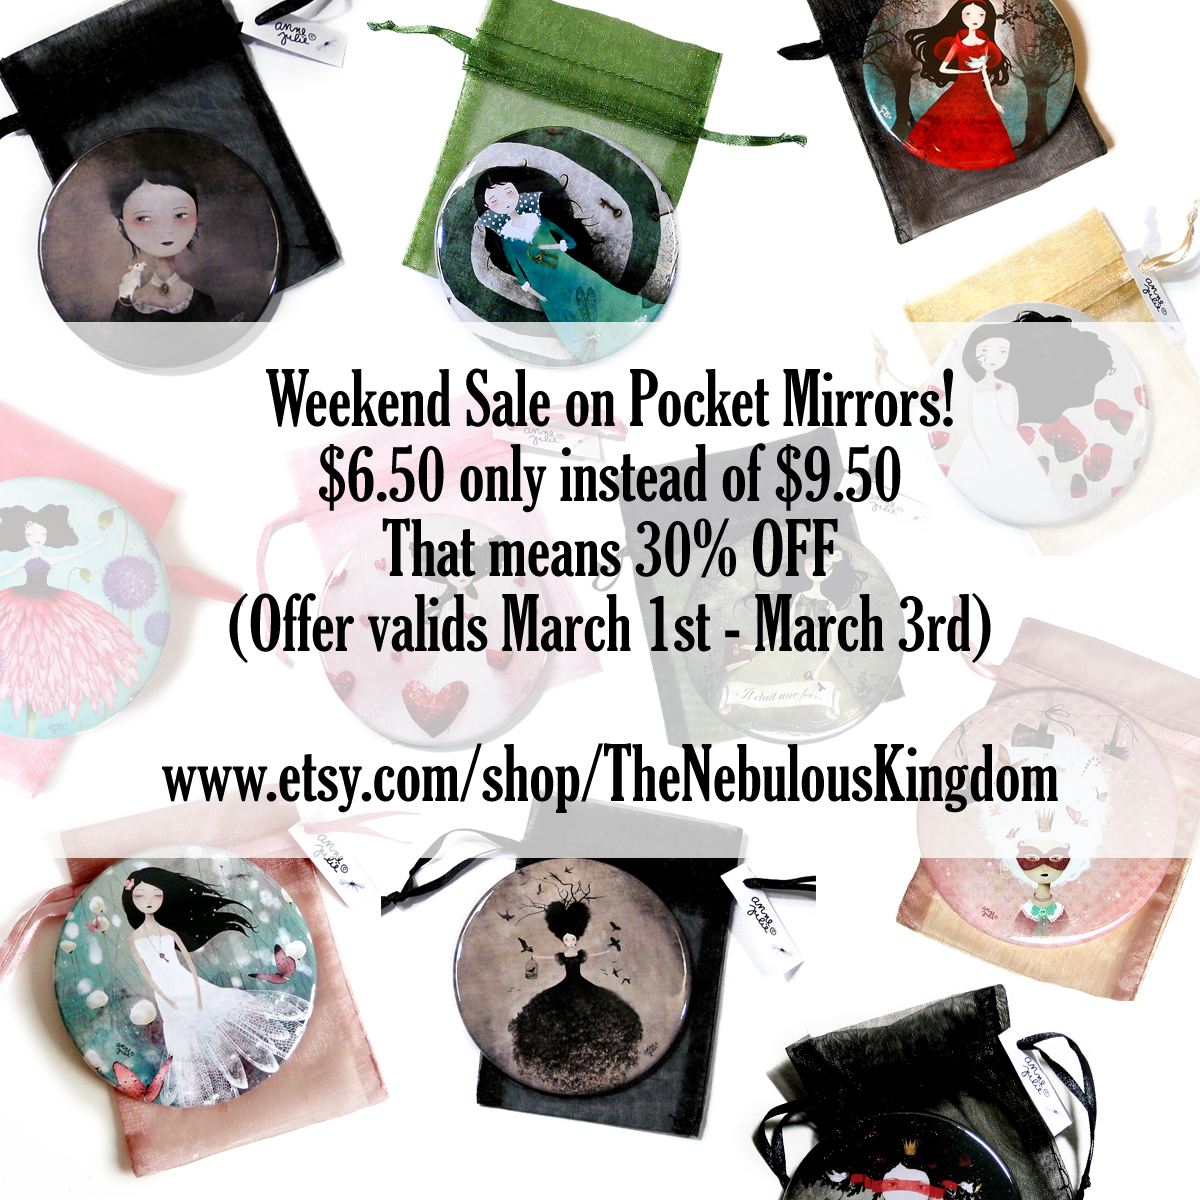 Pocket Mirrors with Art from Anne-Julie Aubry - https://www.etsy.com/shop/TheNebulousKingdom